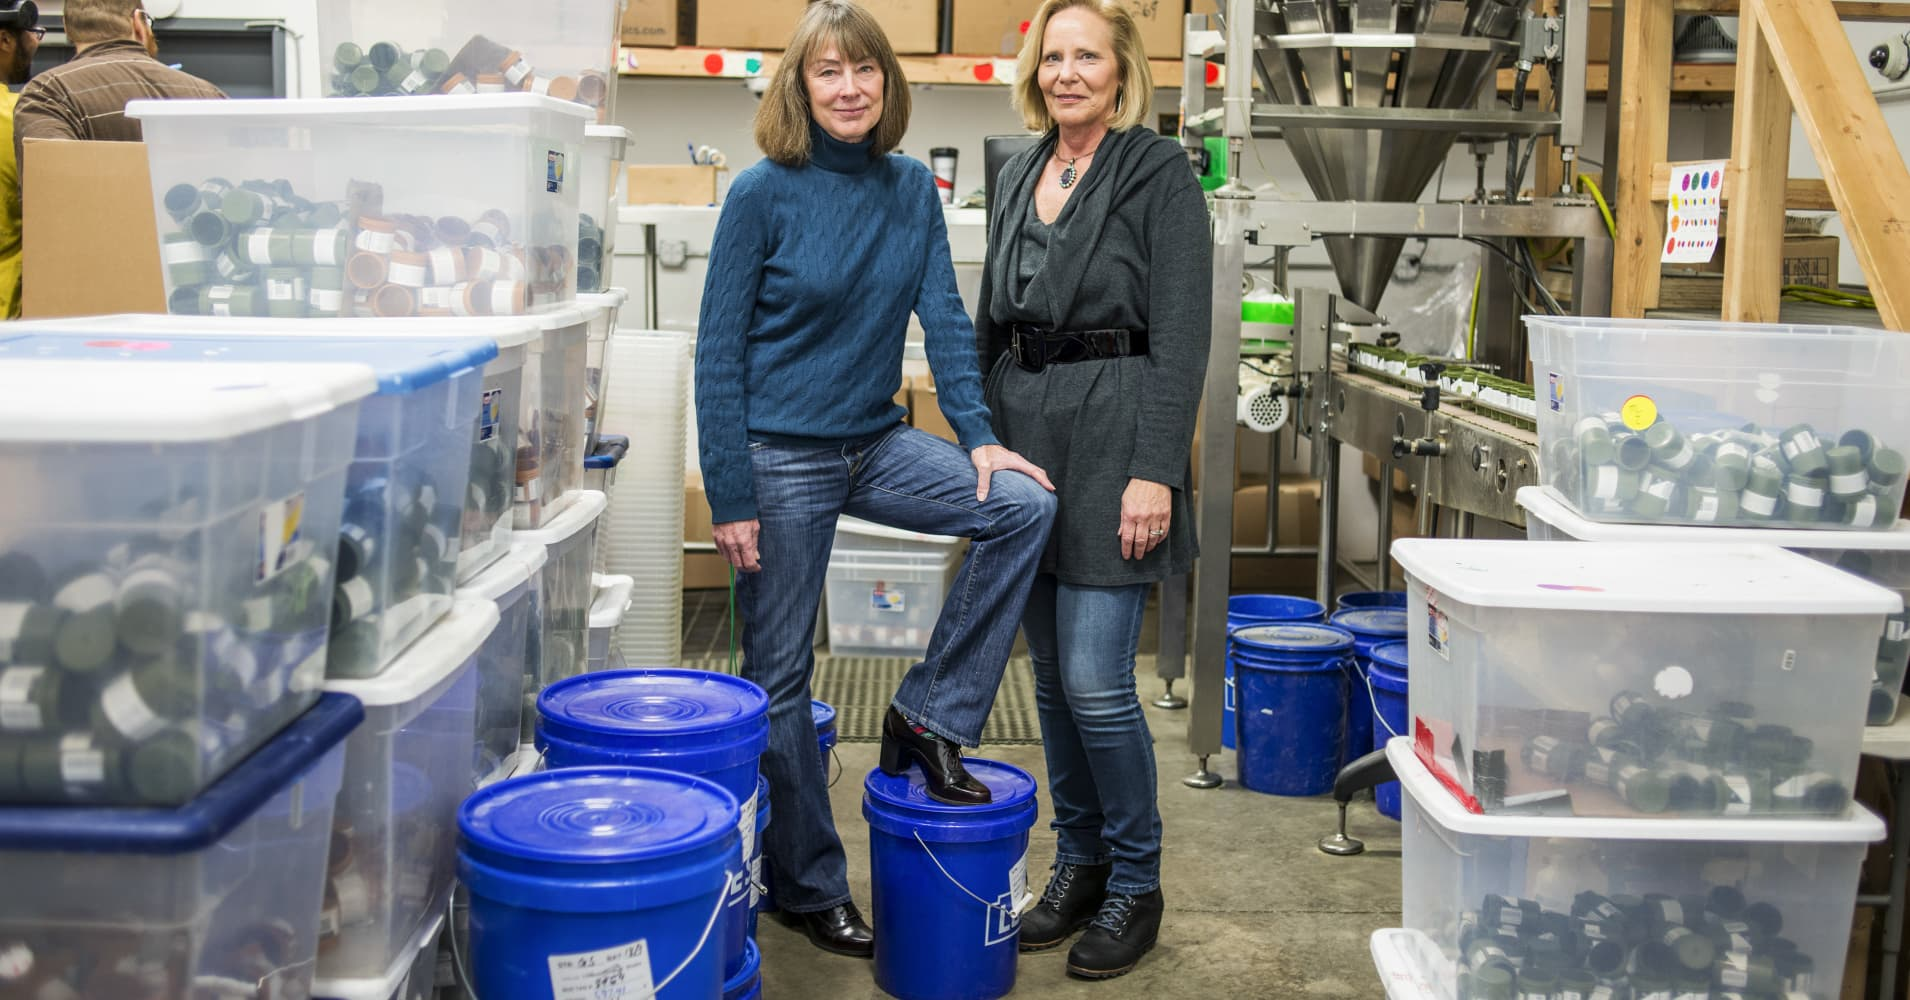 Barbara Diner, right, and Deb Baker, managing partners of Higher Standard Packaging, which makes containers for cannabis products, at the Terrapin Care Station production facility in Aurora, Colo., Jan.  12, 2017.